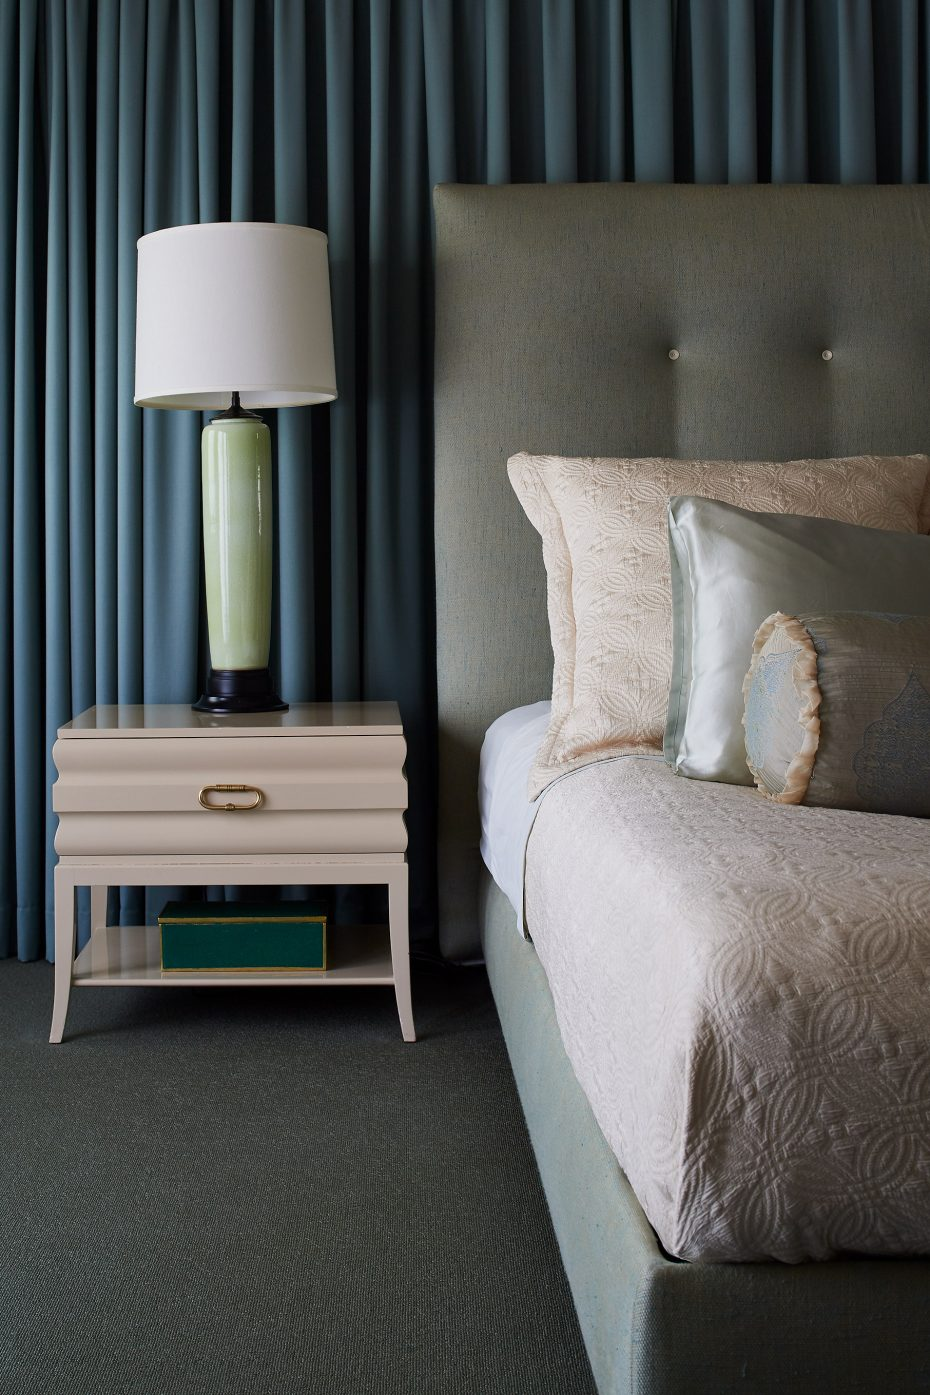 primary bedroom with upholstered tall headboard, Vintage Springer nightstands, vintage green lamps, full wall of drapery